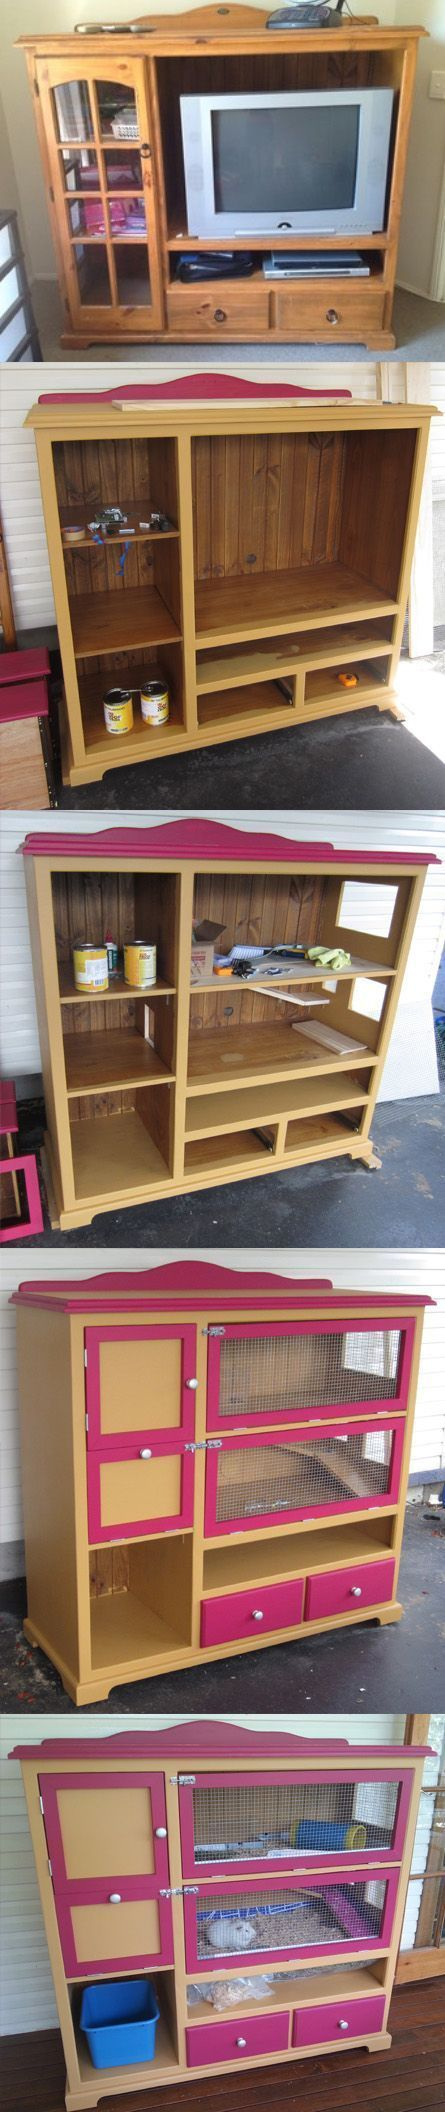 Best 20 rabbit hutches ideas on pinterest bunny hutch for Diy guinea pig cage from dresser